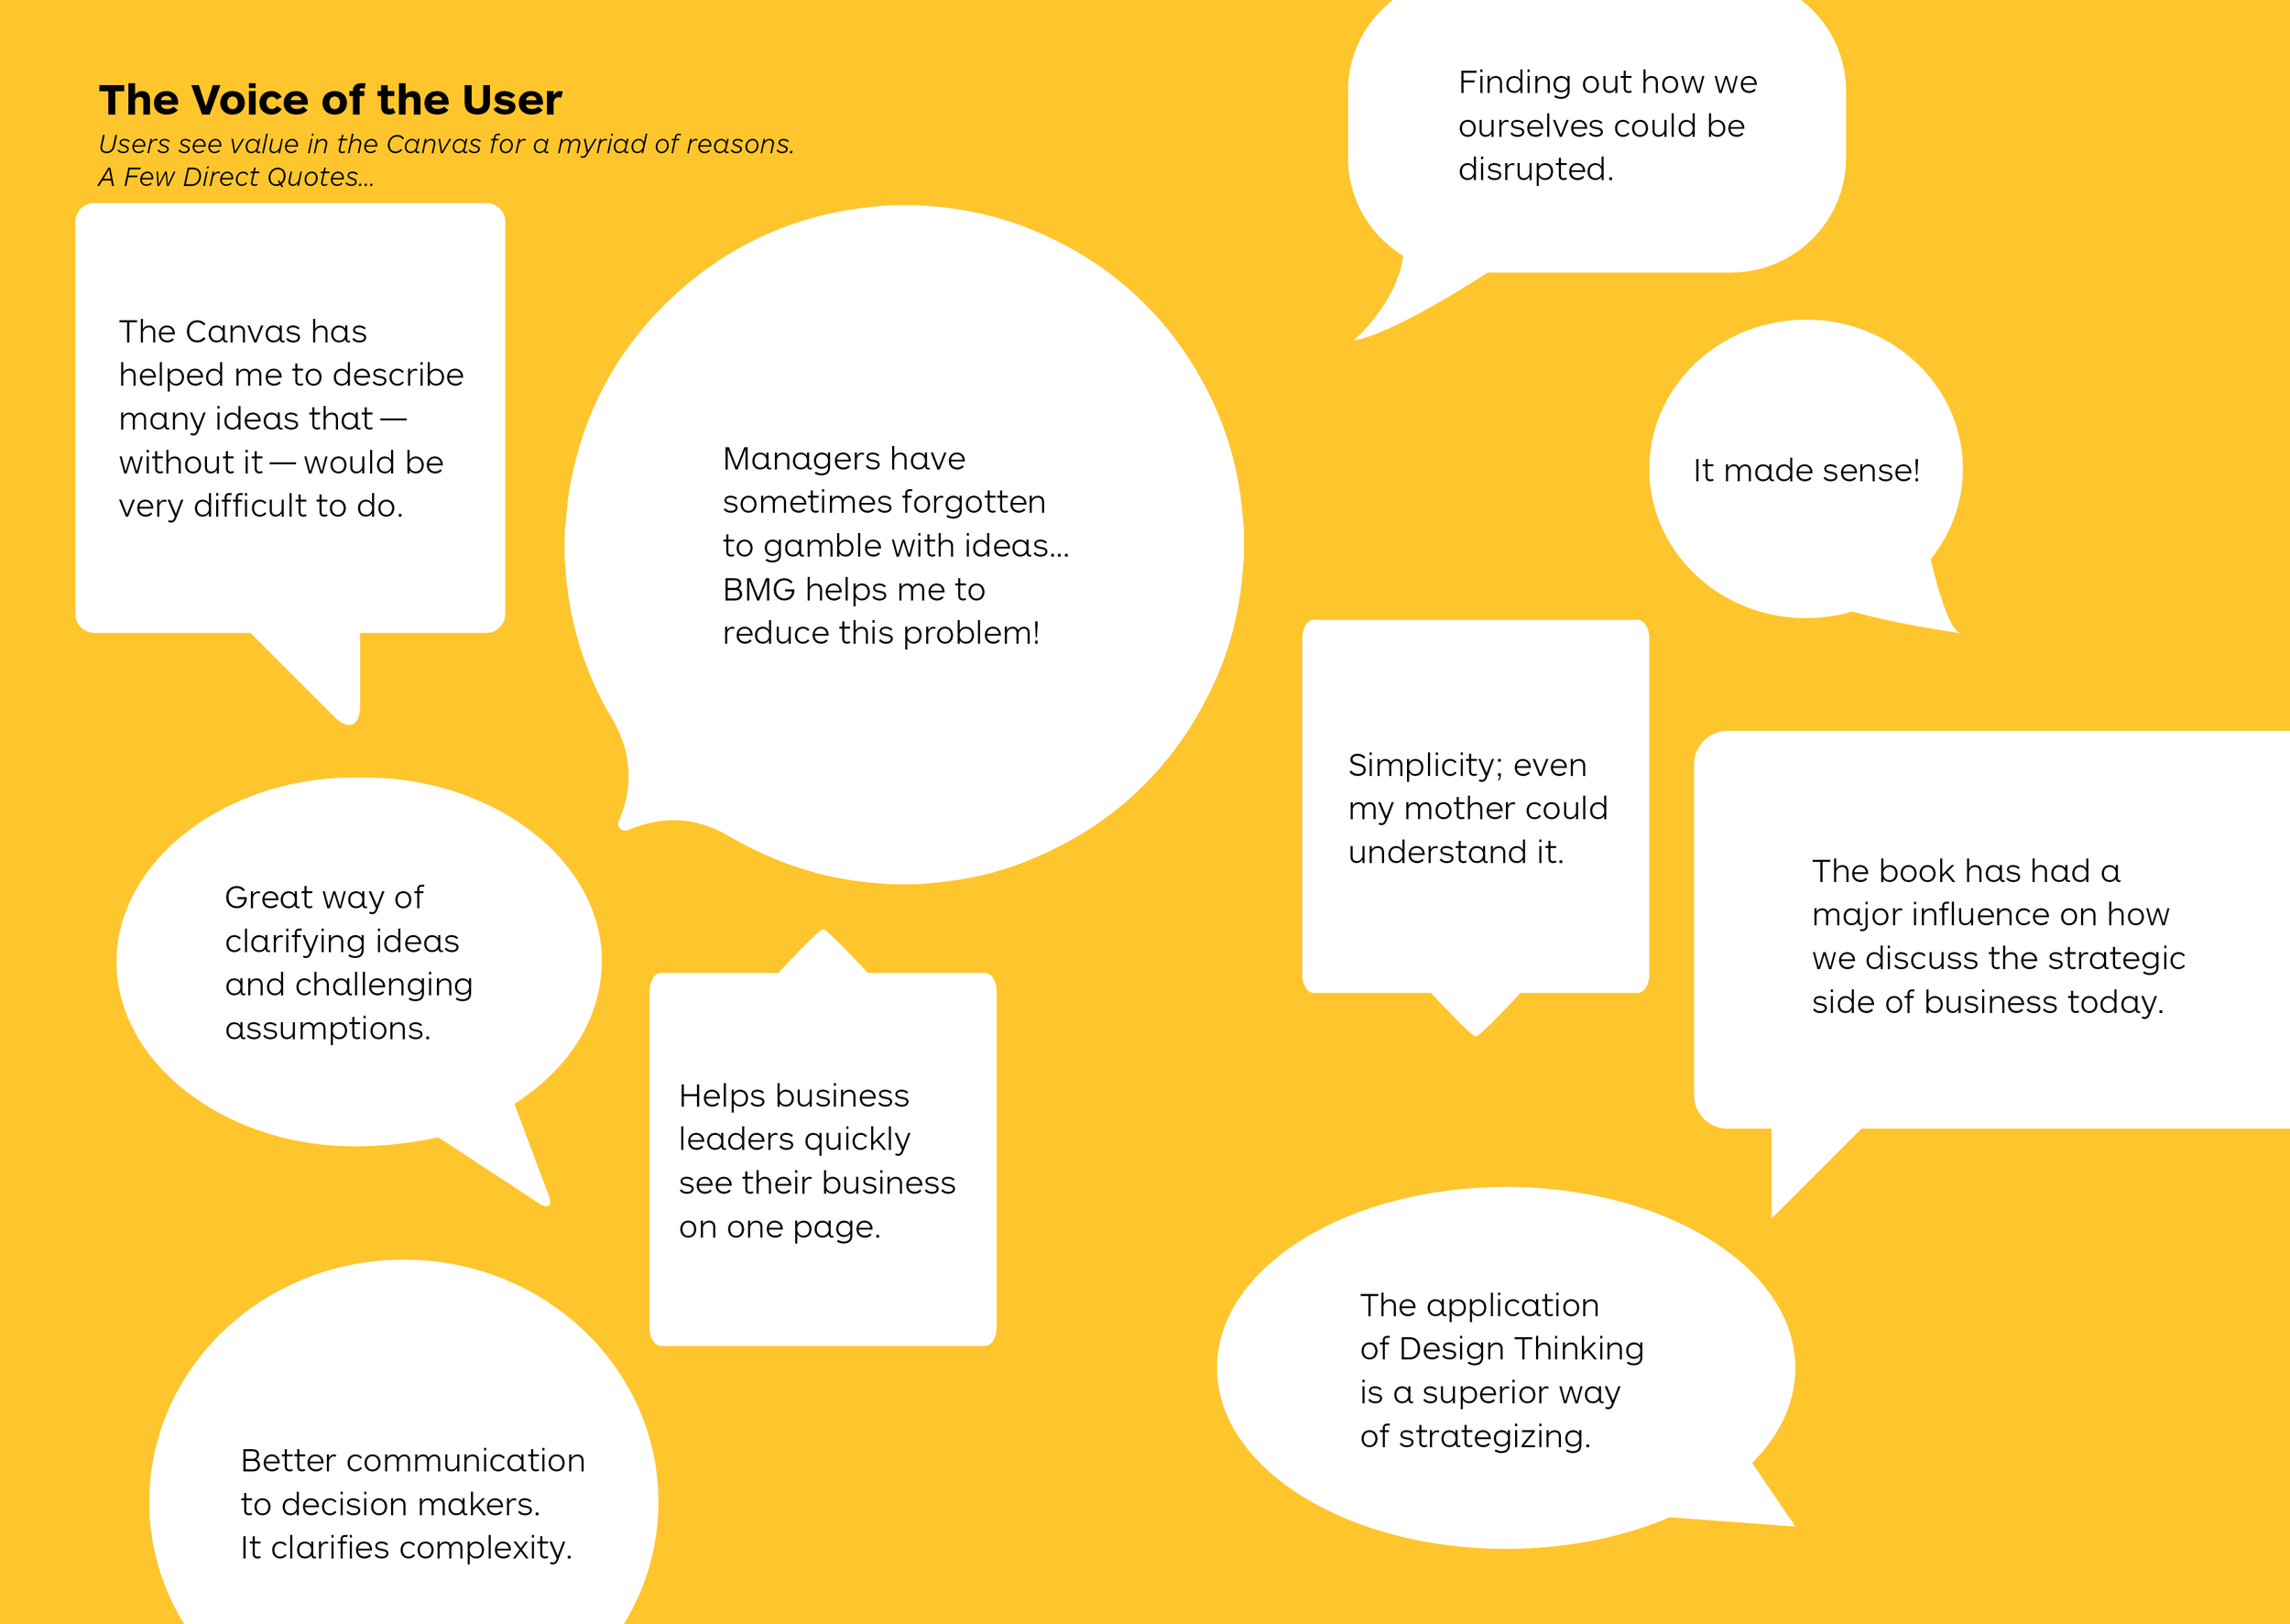 How adopters find value in the Business Model Canvas in a few quotes.